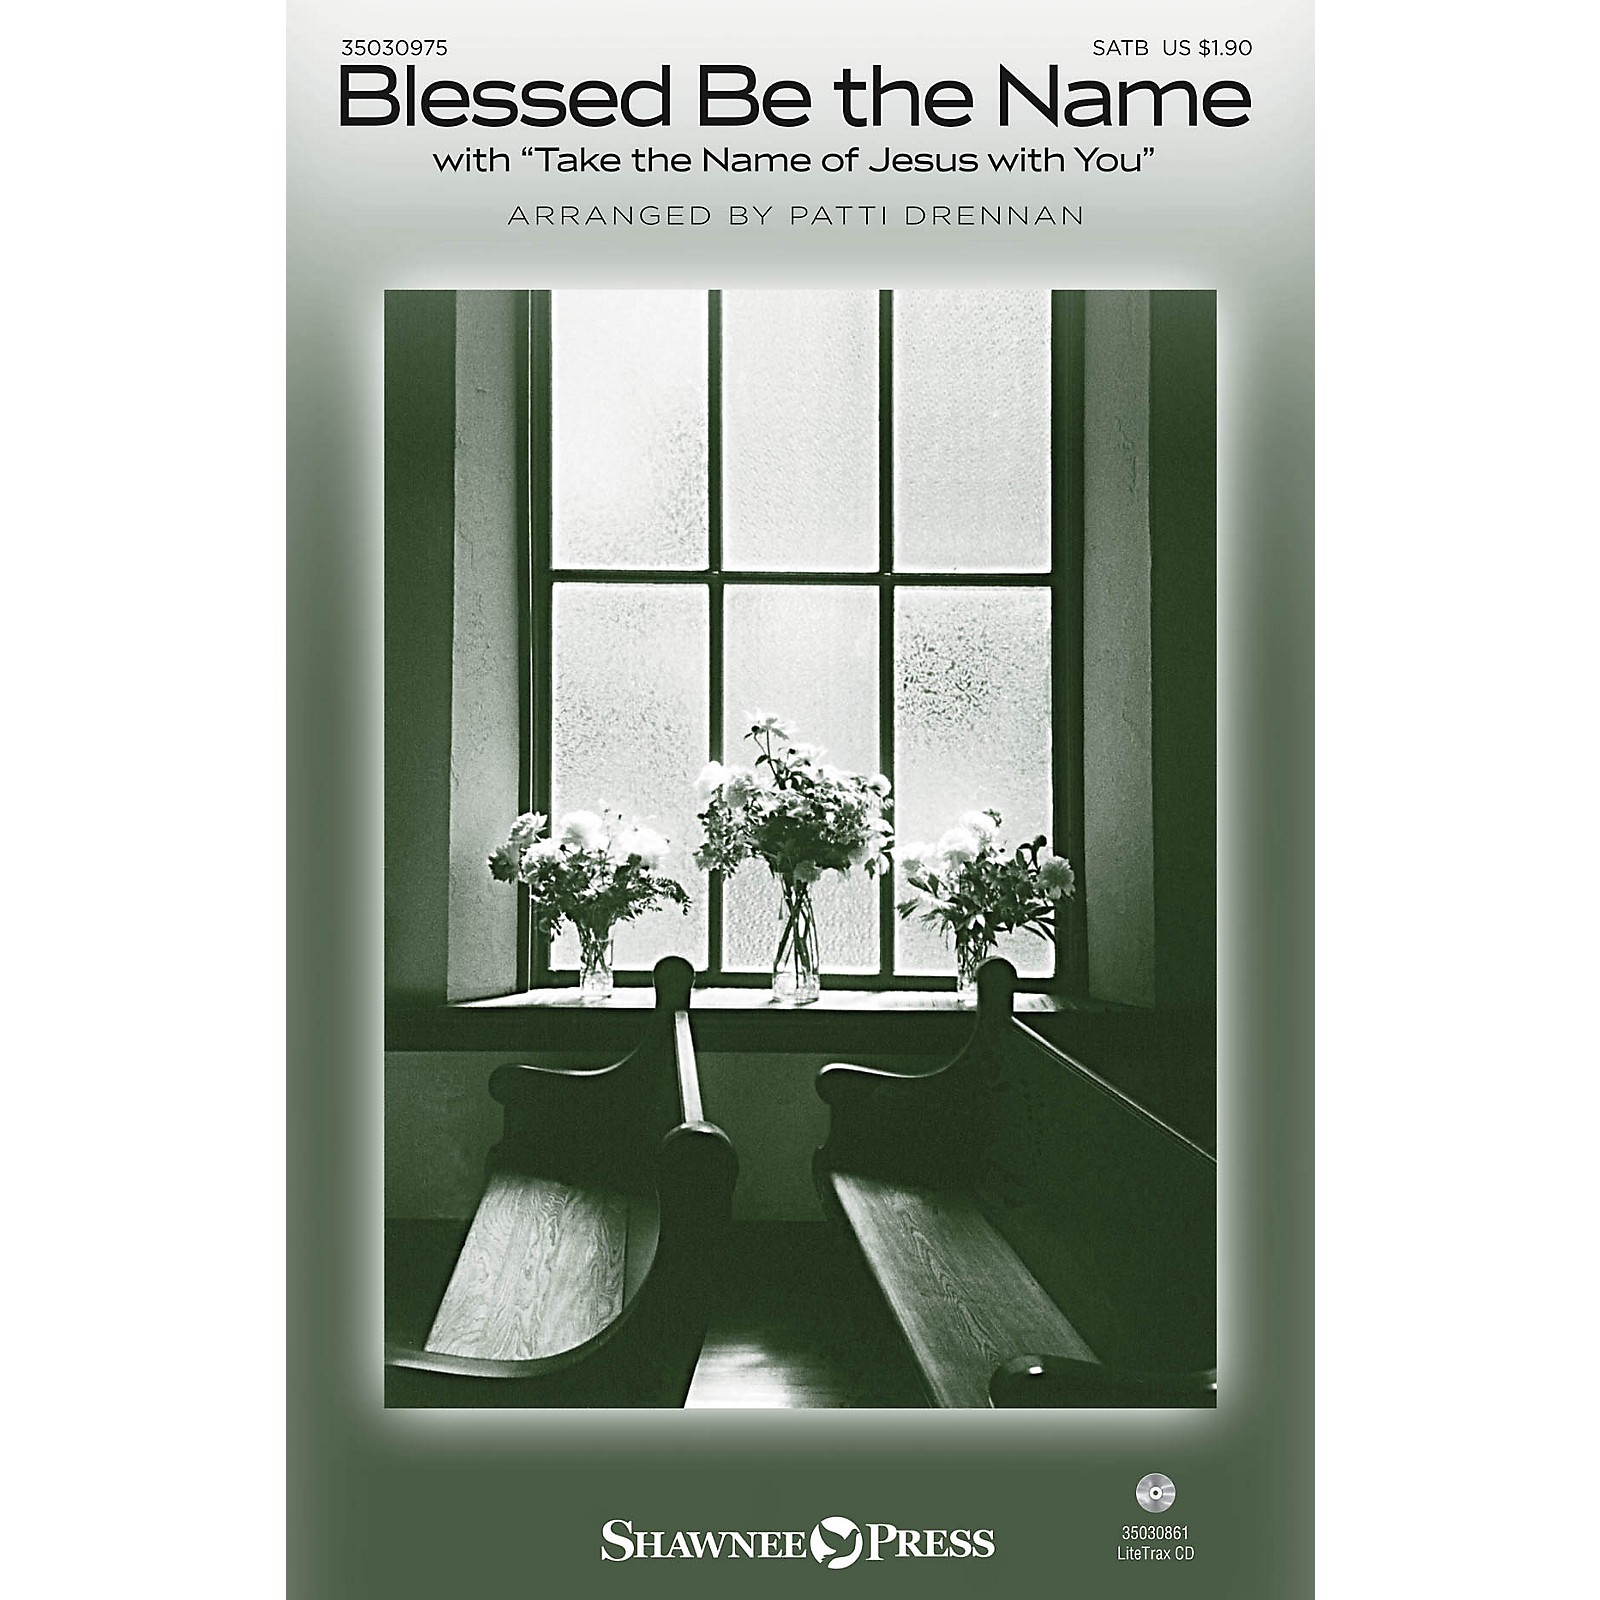 Shawnee Press Blessed Be the Name SATB arranged by Patti Drennan